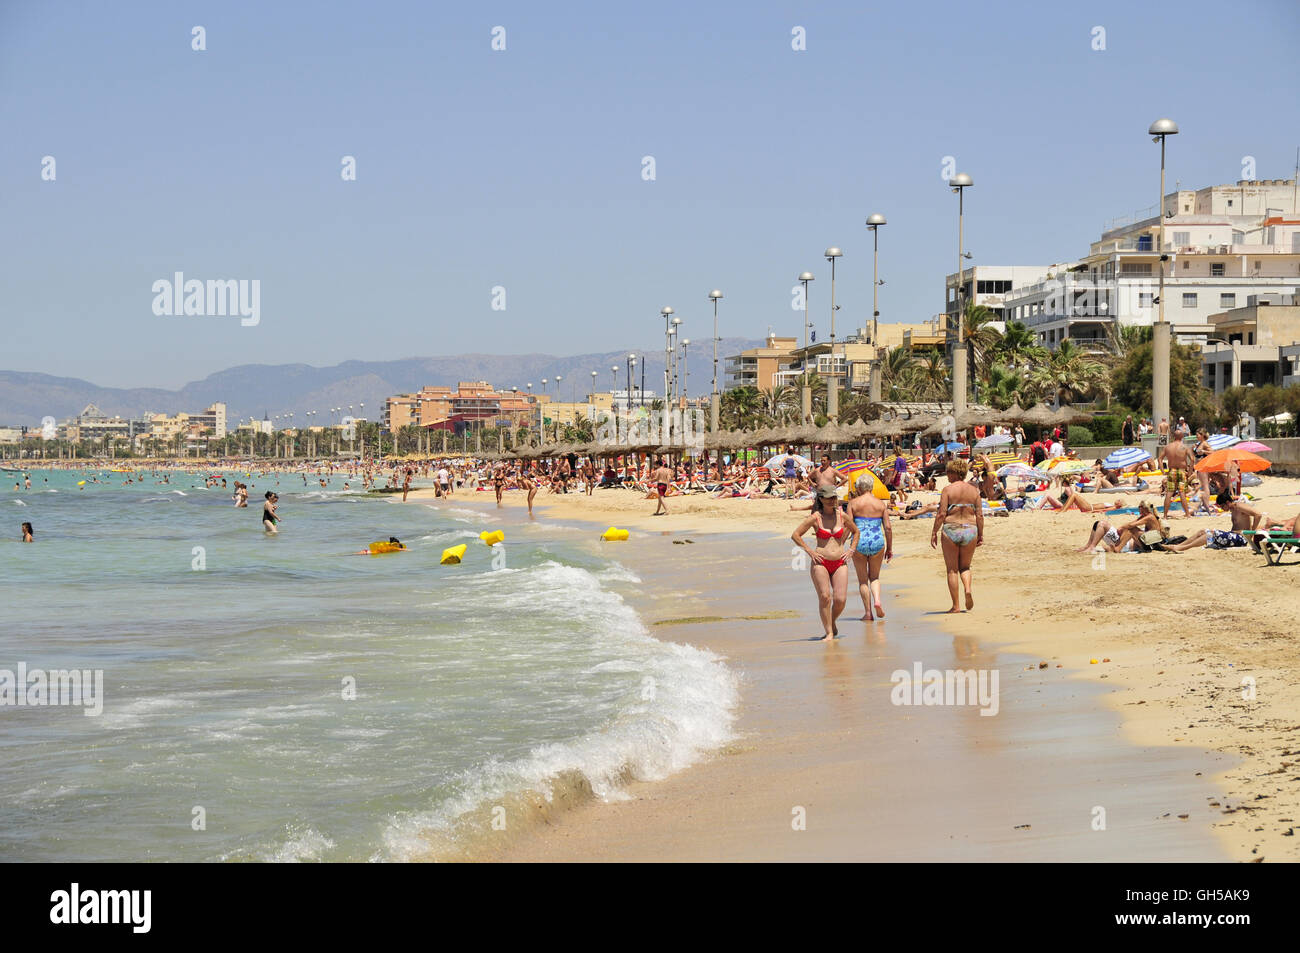 geography / travel, Spain, bather in El Arenal at the playa de Palma, Majorca, Balearics, Additional-Rights-Clearance - Stock Image